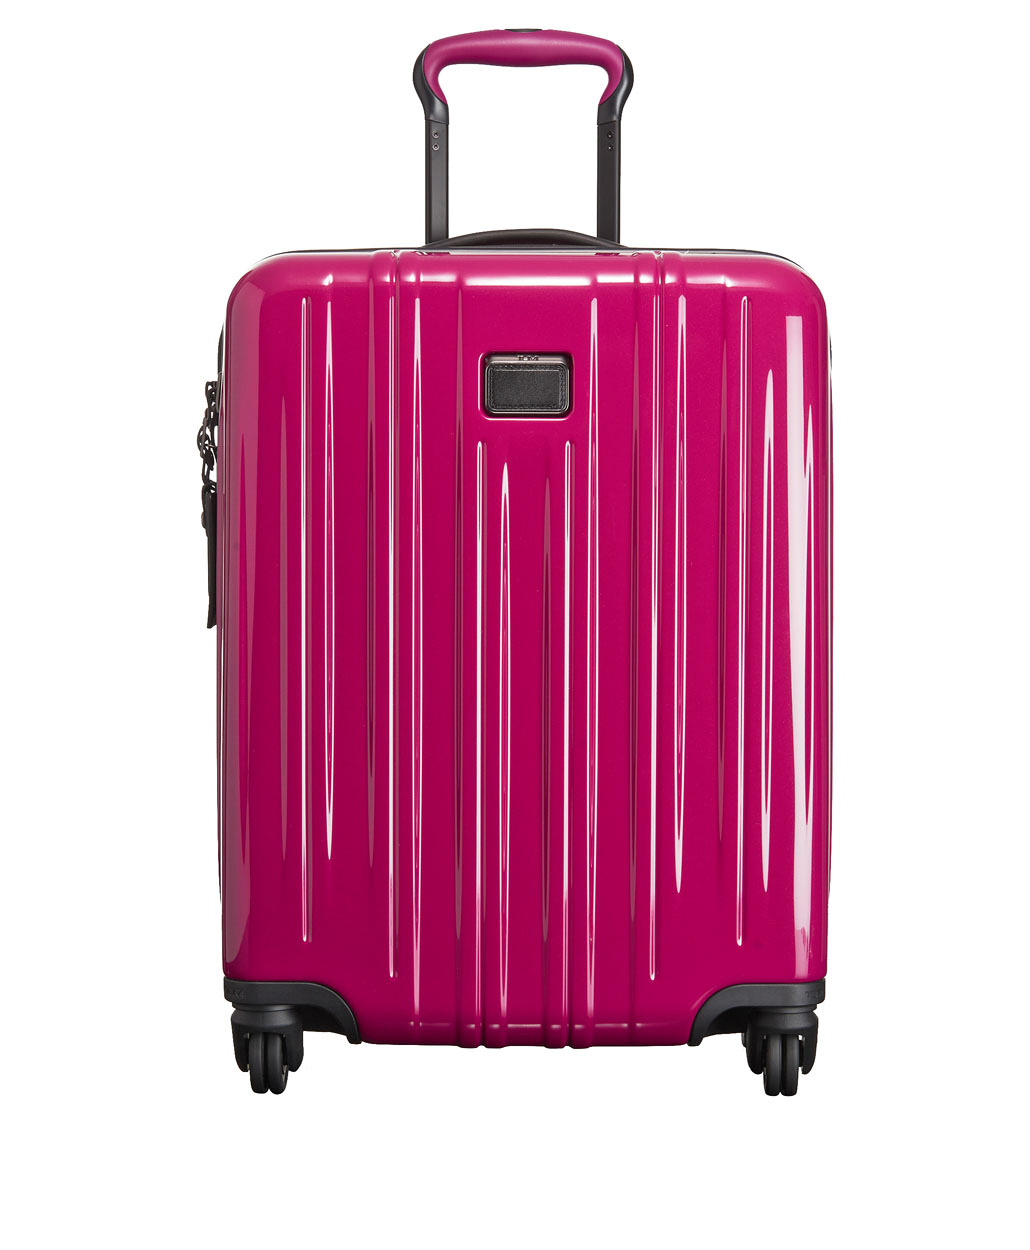 carry on bag pink suitcase